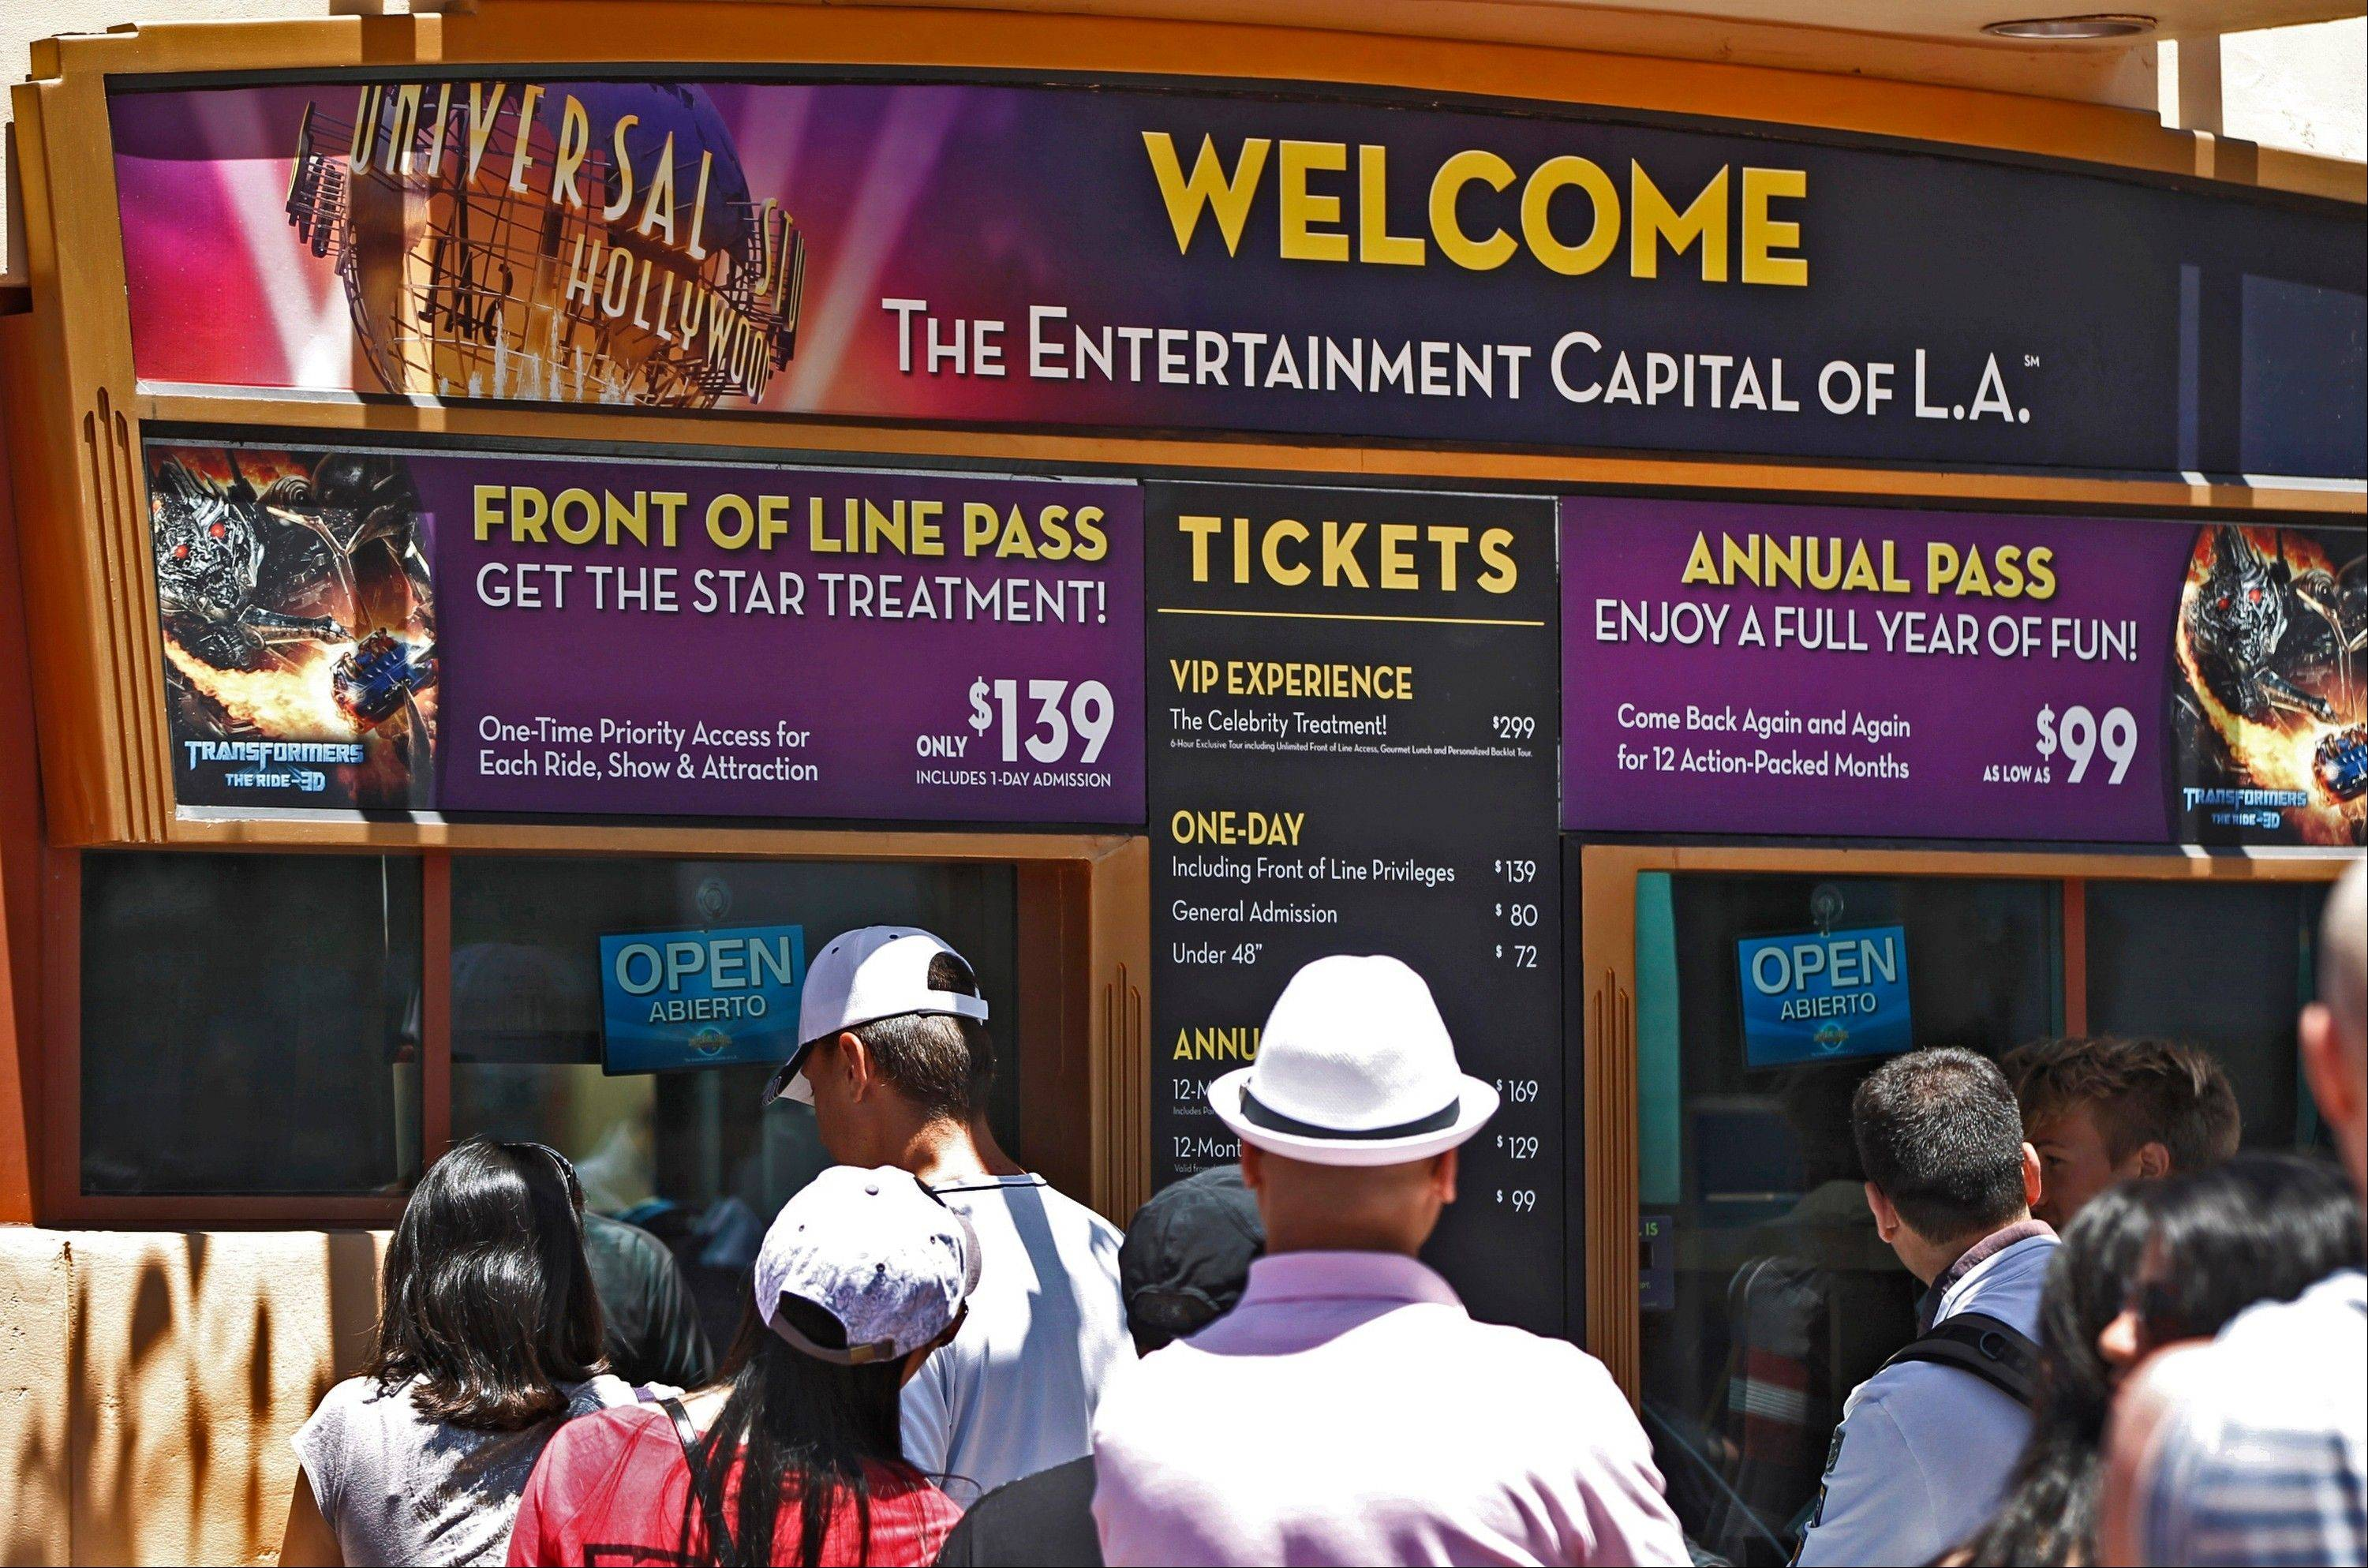 Tourists purchase tickets at Universal Studios Hollywood in Los Angeles.